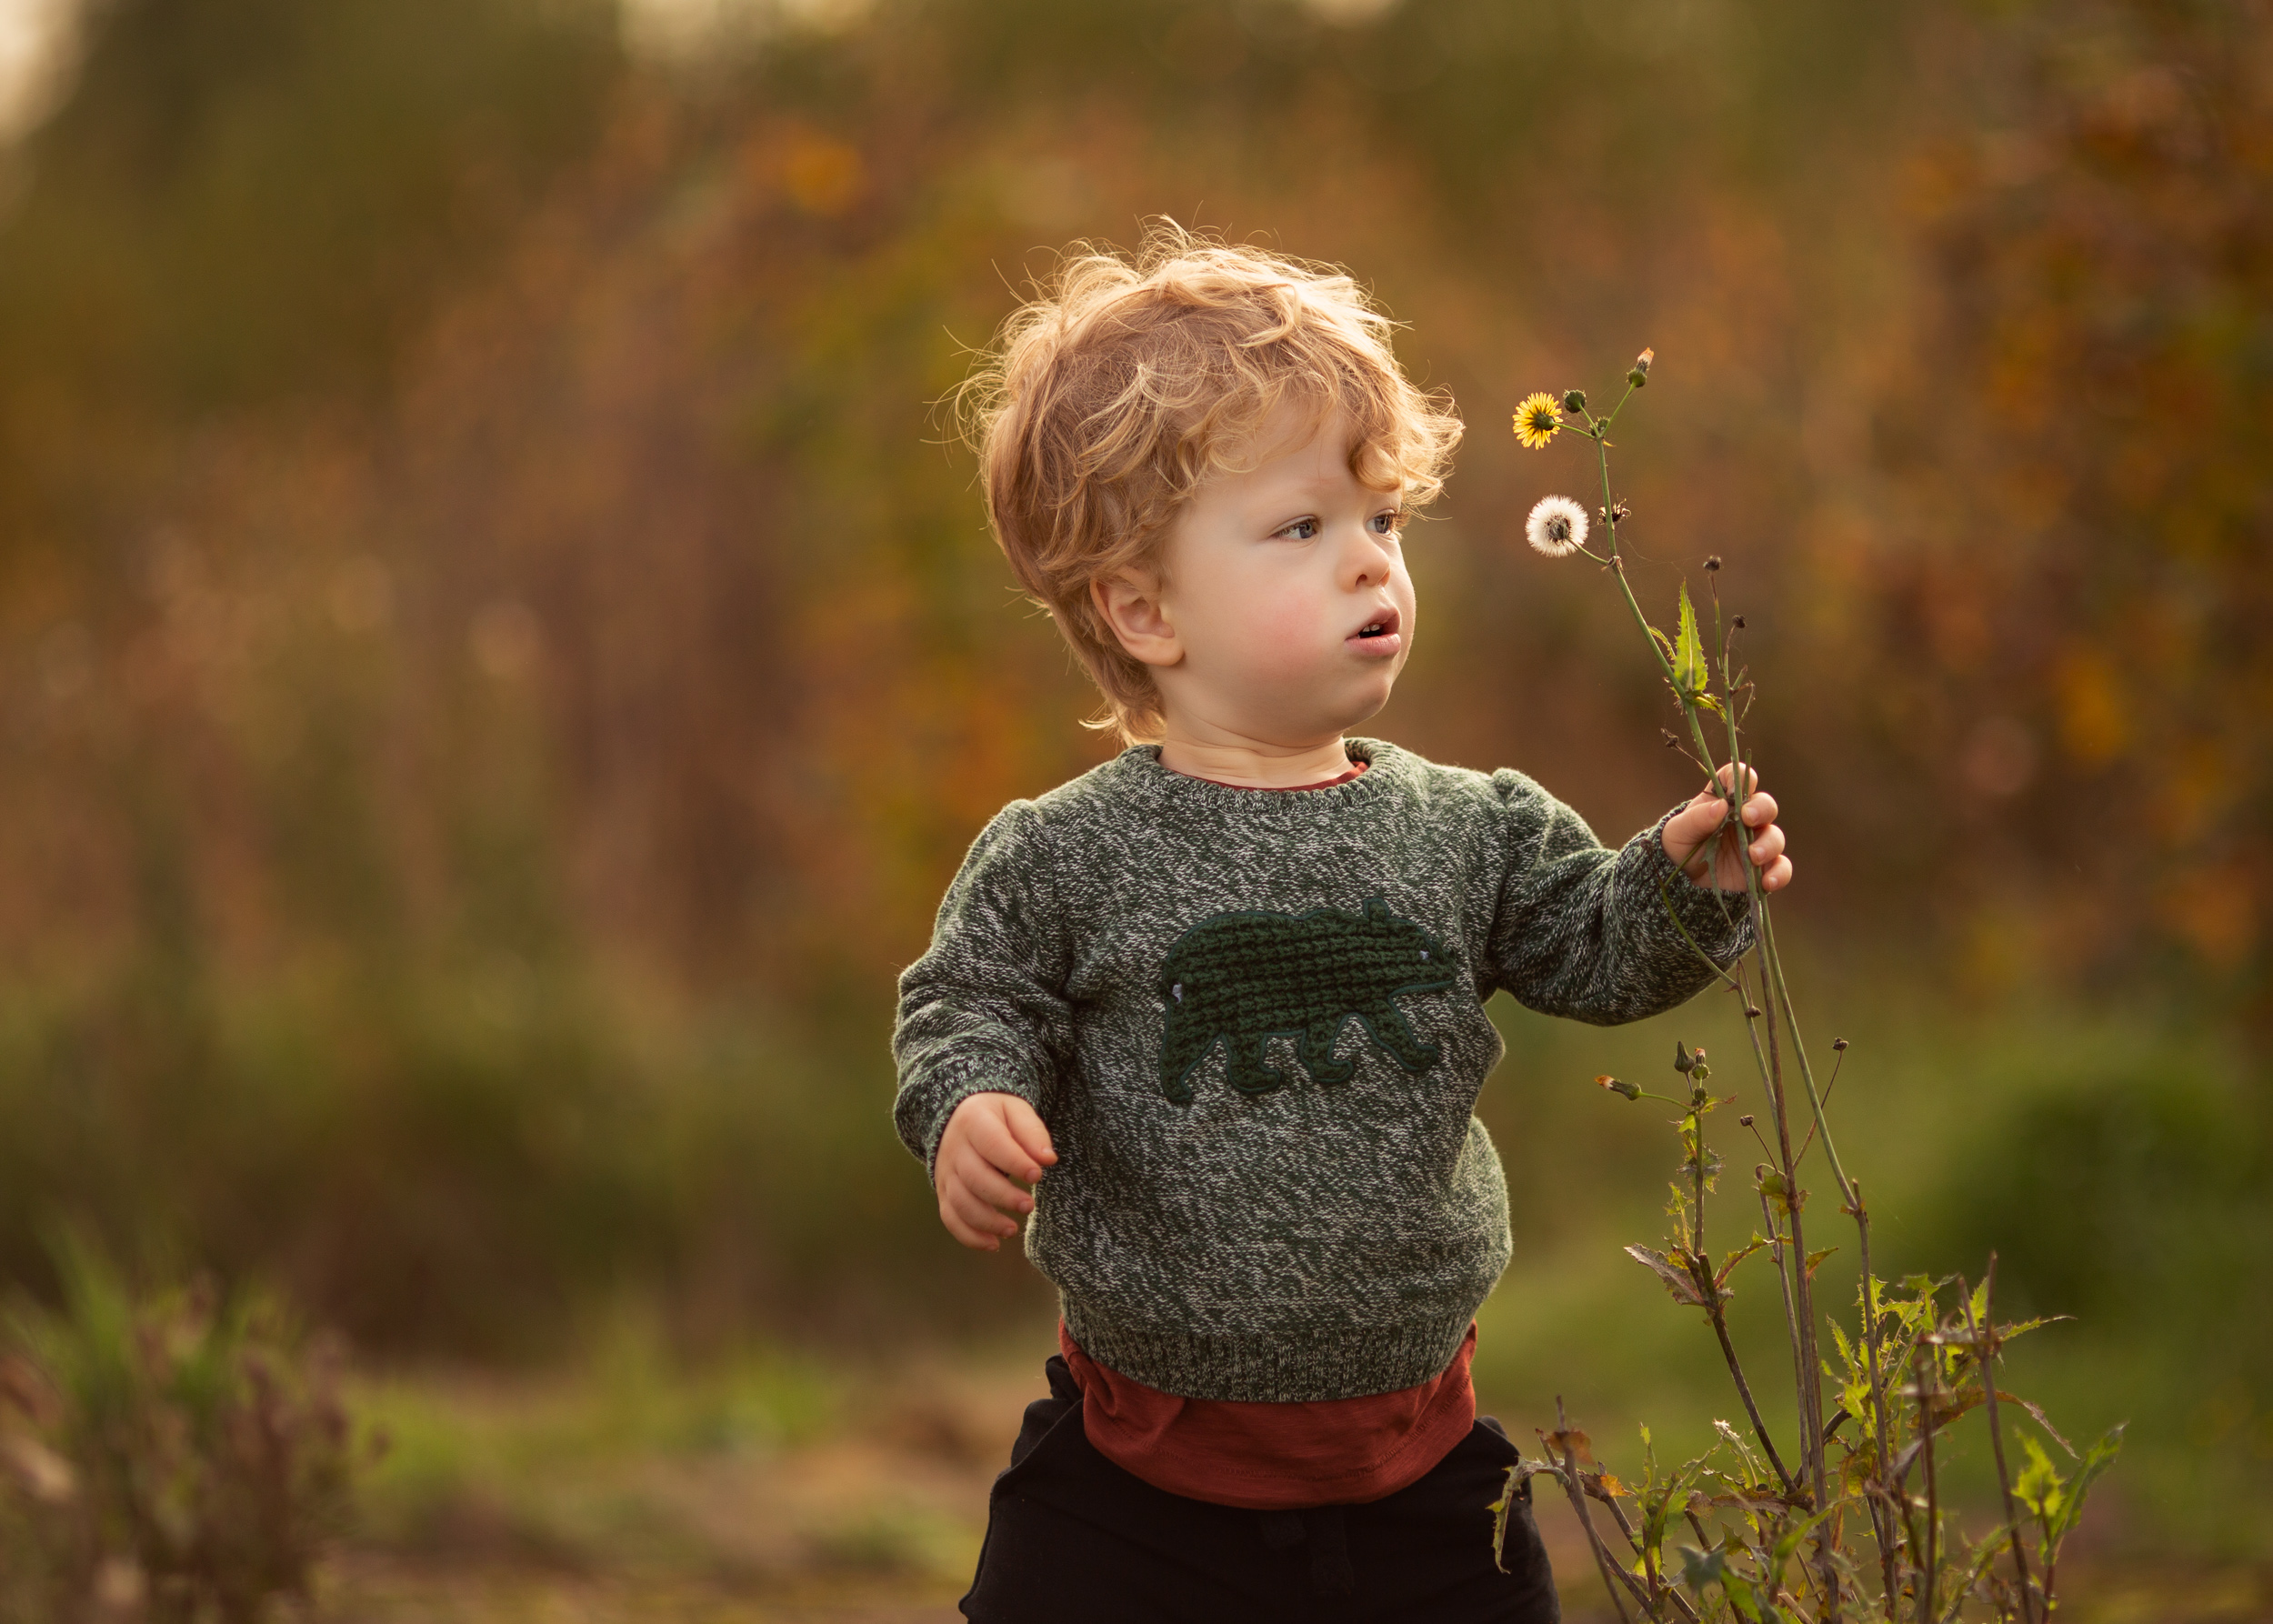 Rufus picking flowers during an outdoor family portrait session in Nantwich, Cheshire